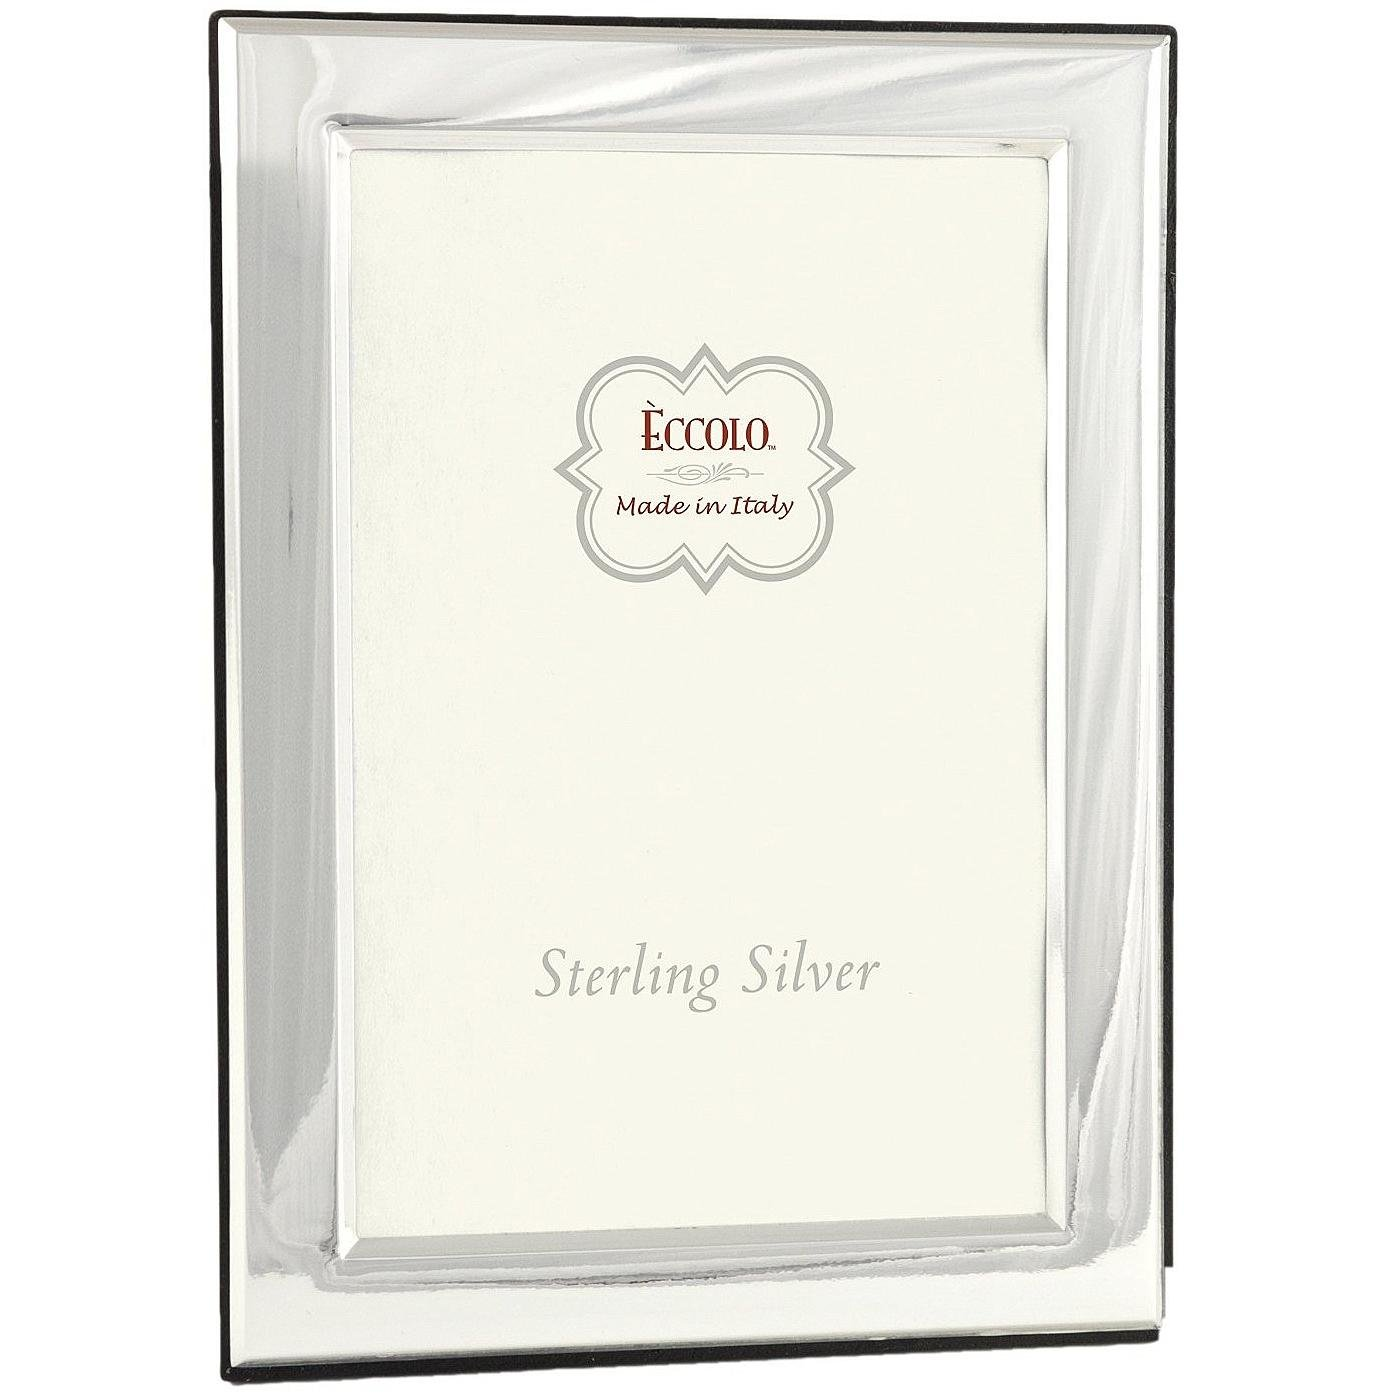 Eccolo Sterling Silver Frame, 5 by 7-Inch, Smooth Square Corners by Eccolo